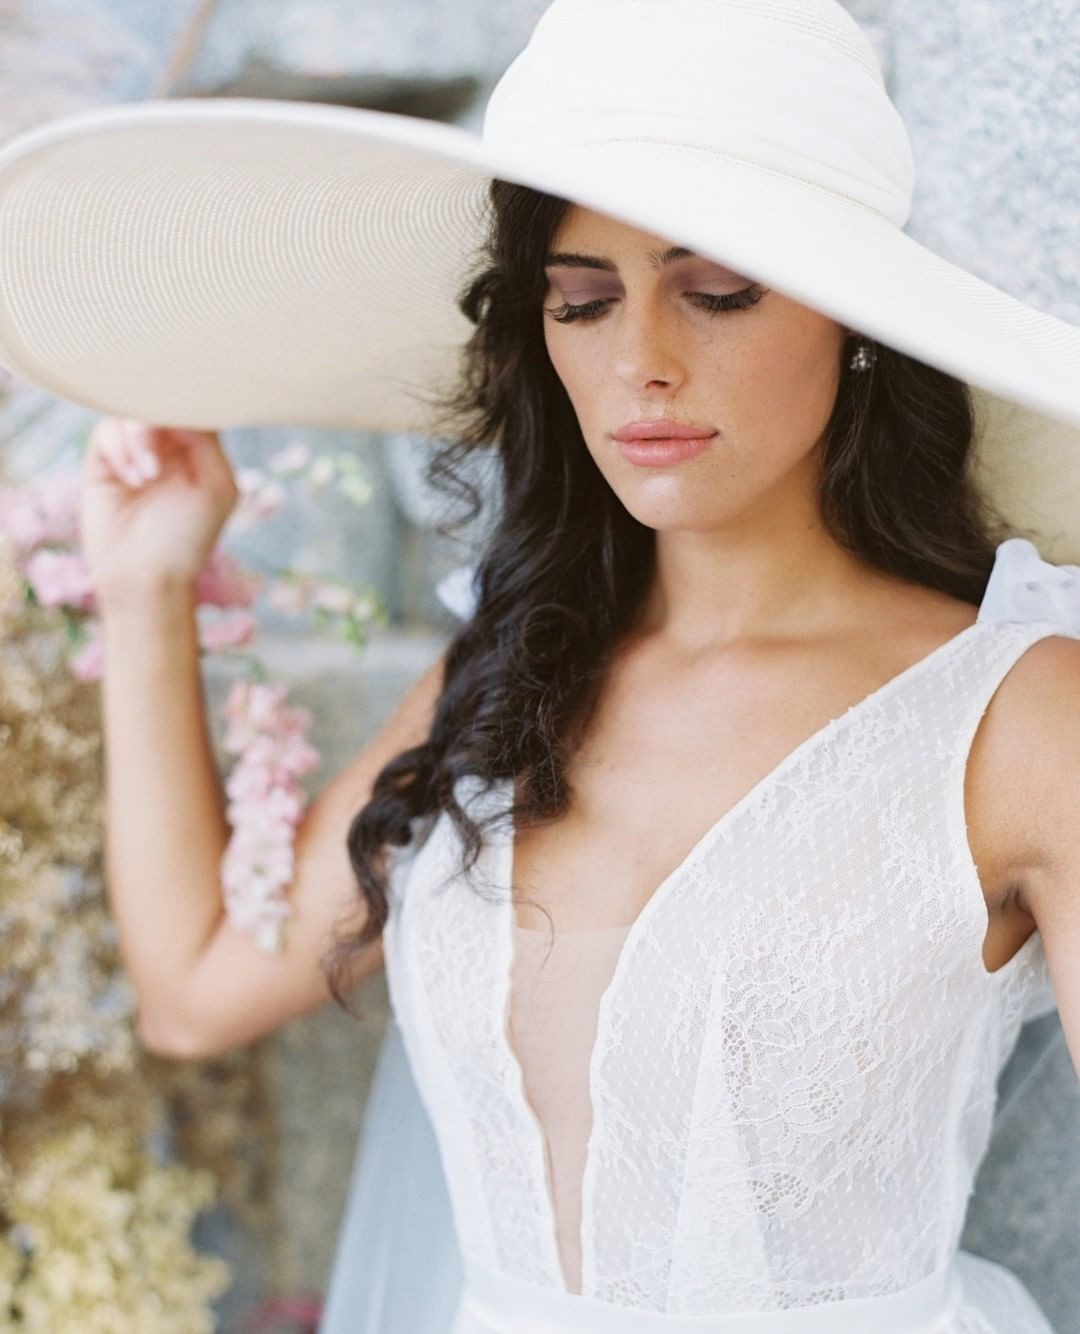 Who doesn't love a bride in a floppy hat! ❤️⁠